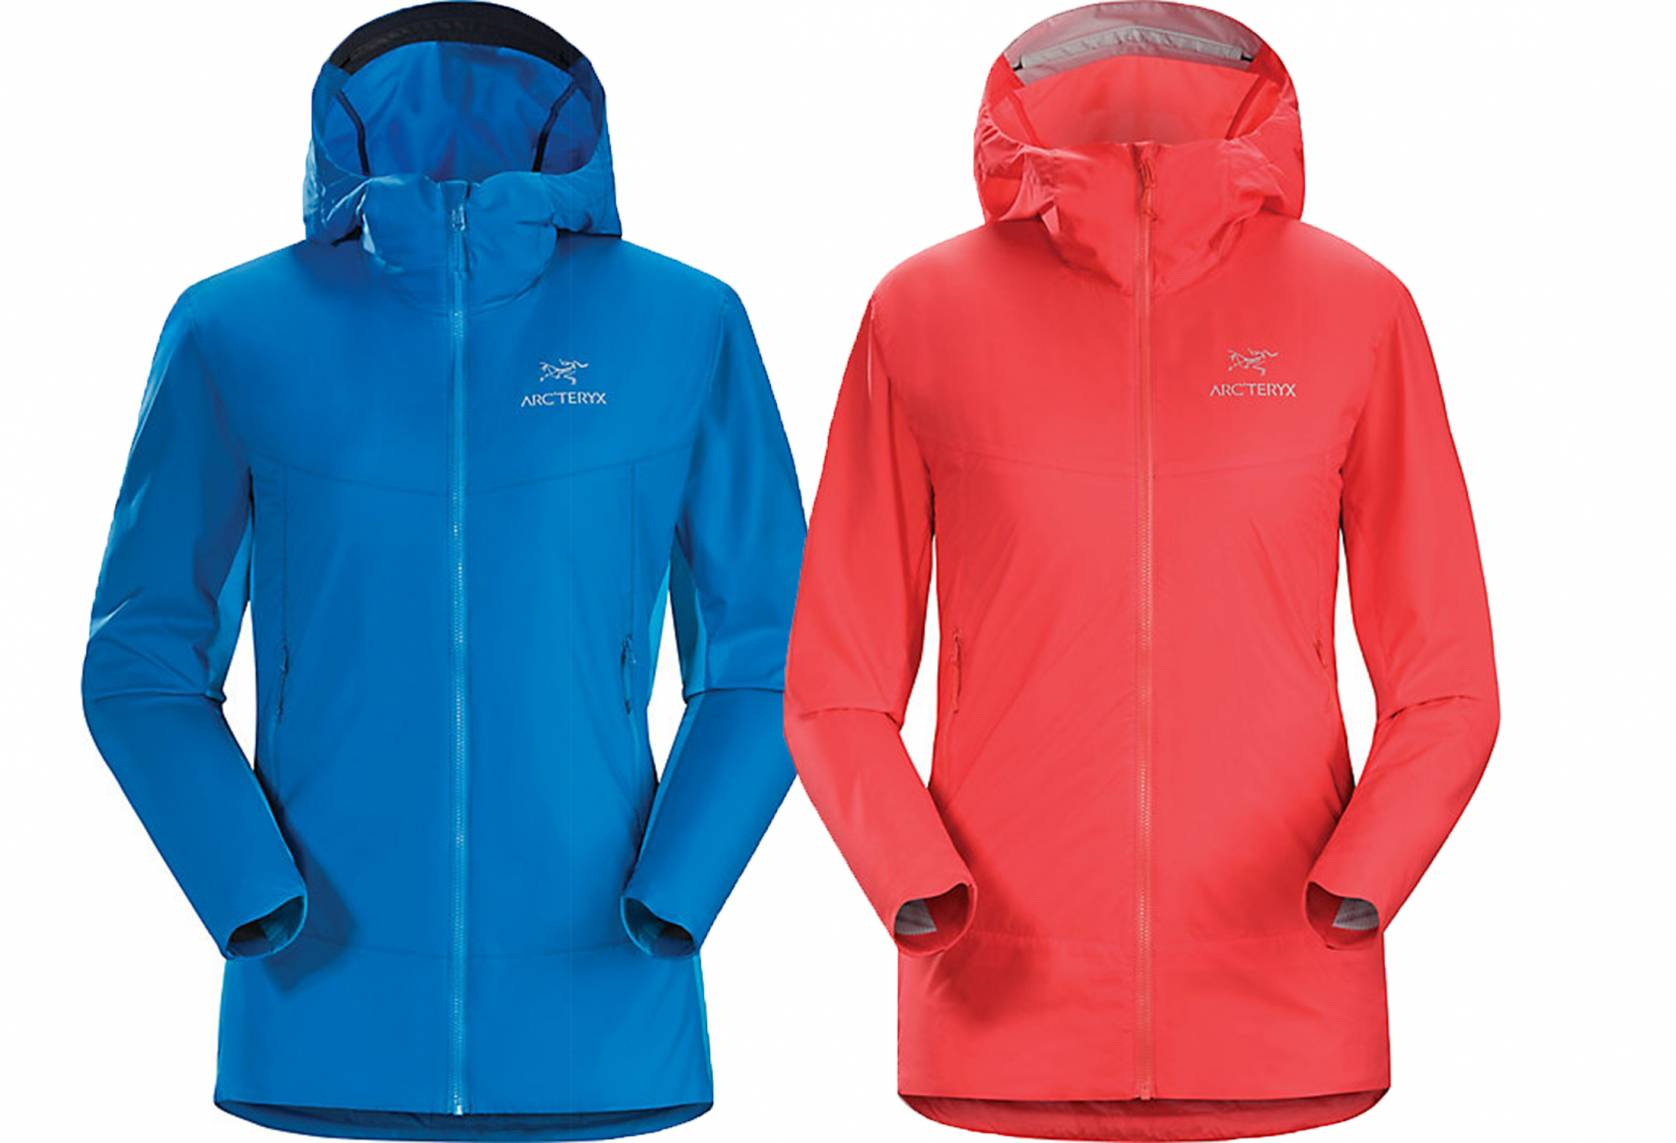 Arc'teryx women's Atom SL Hoody in red and blue with hoods up against white background